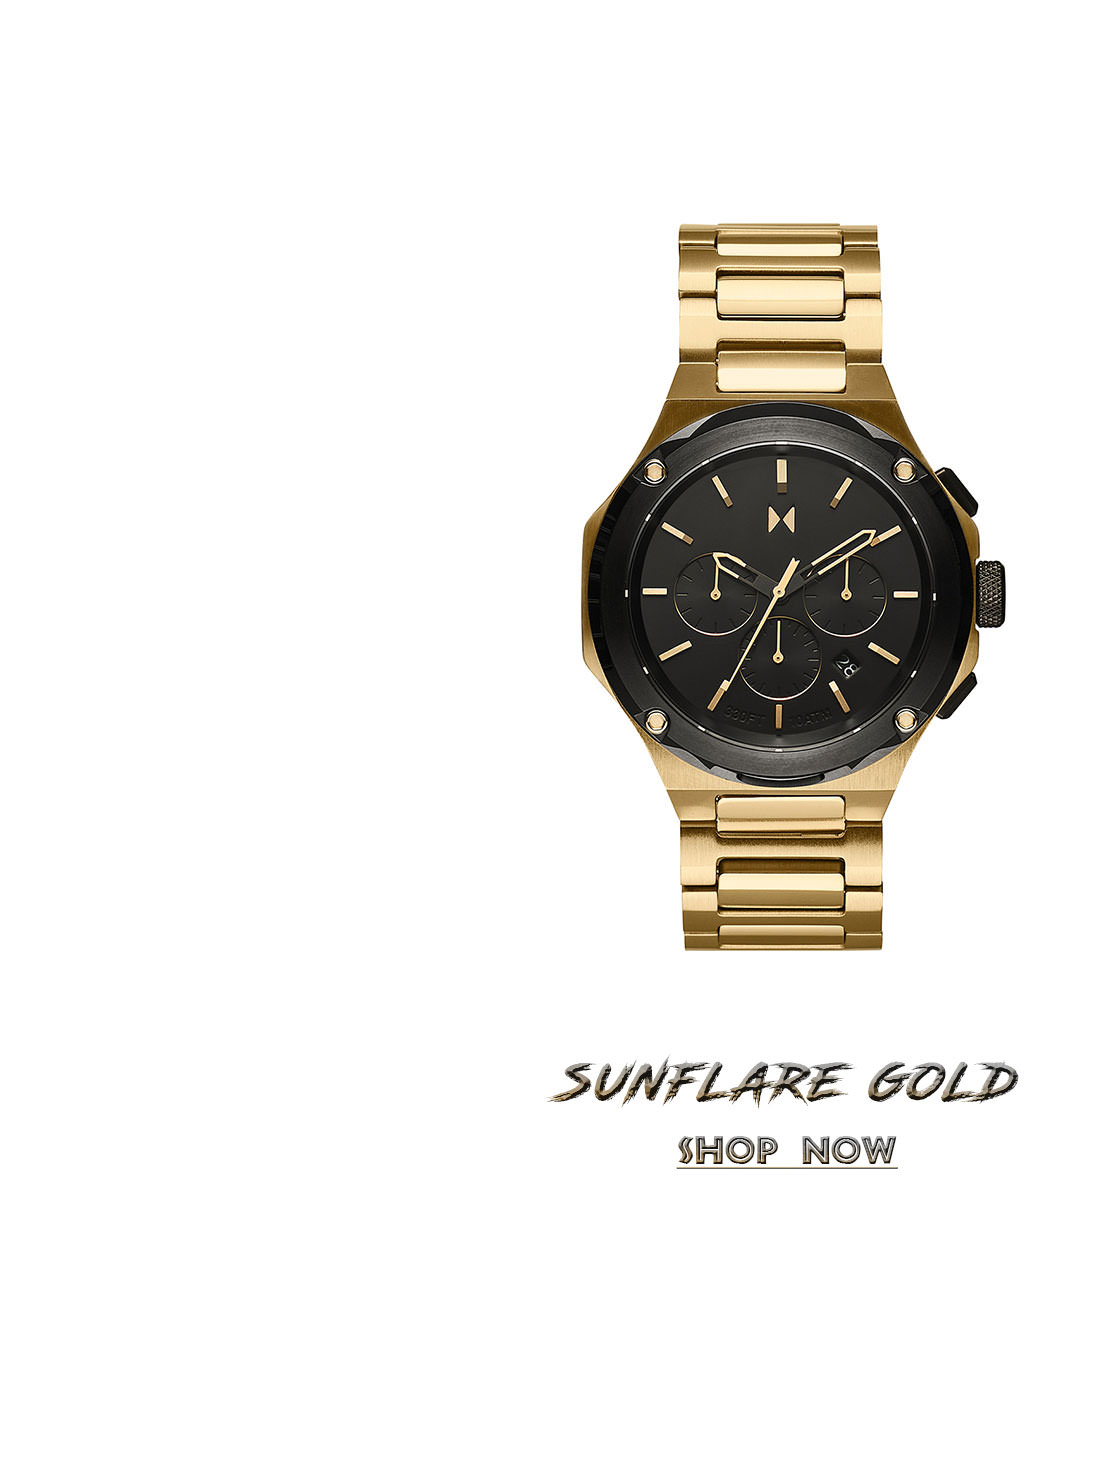 Sunflare Gold | Shop Now